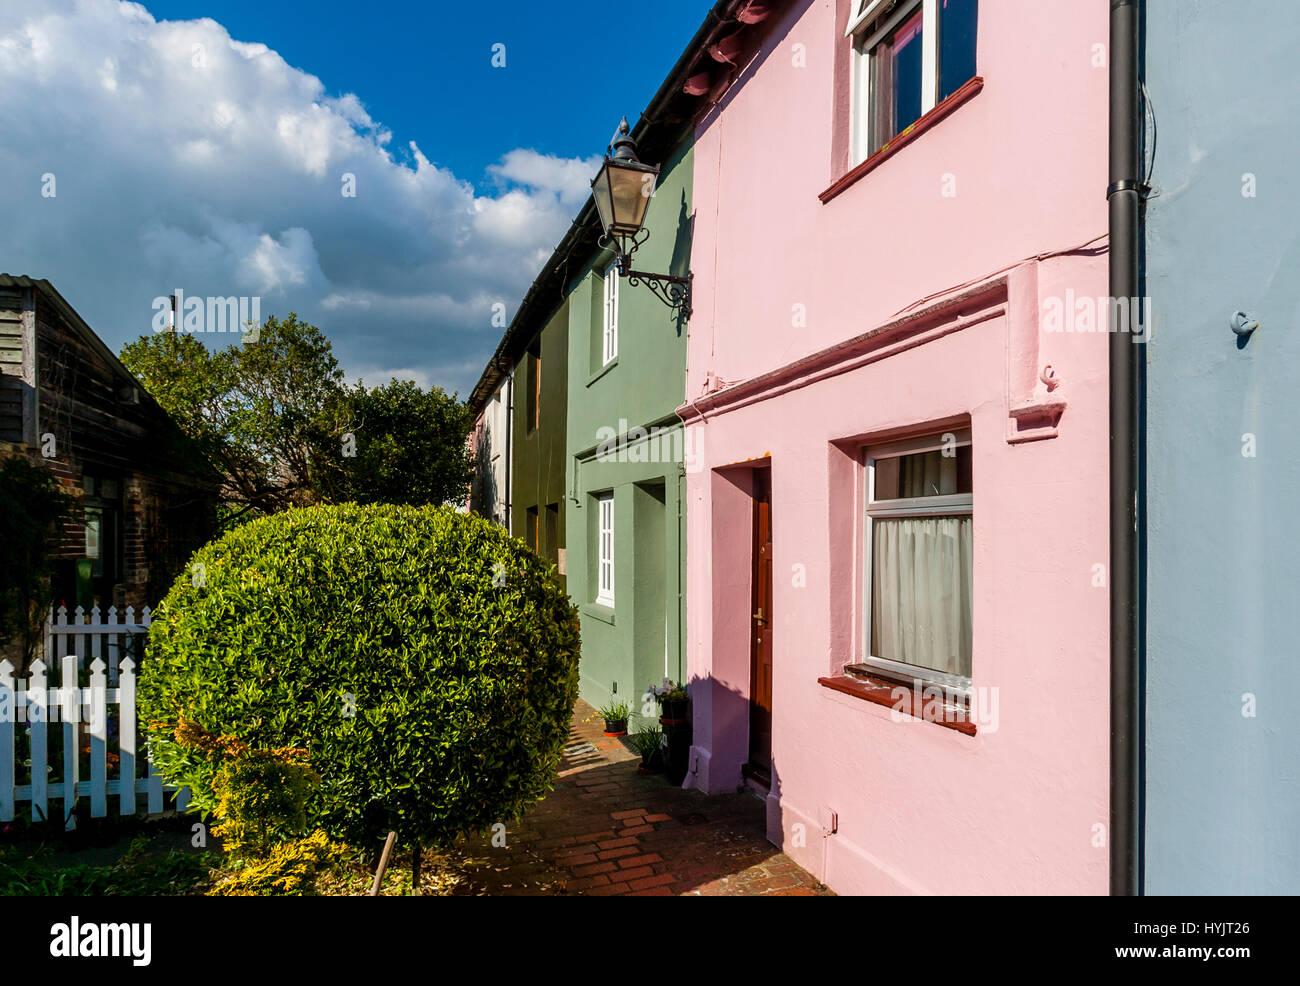 Colourful Houses Cottages Cottage Stock Photos & Colourful Houses ...